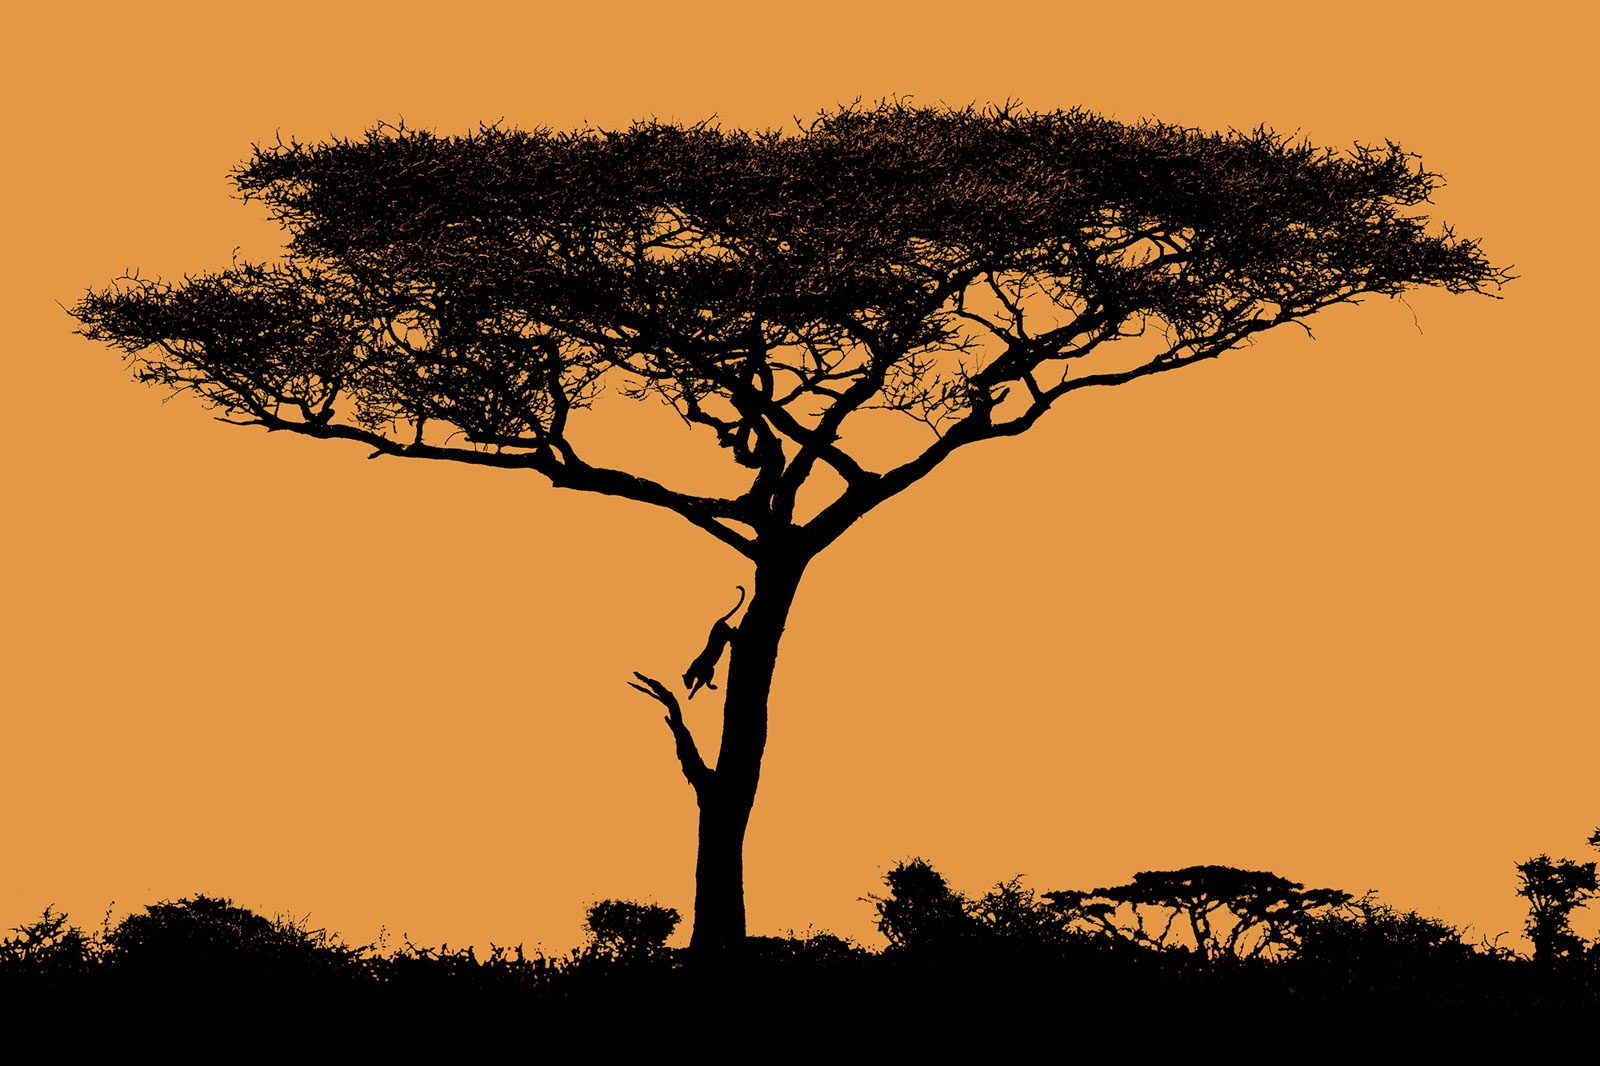 Leopard jumping down a tree - silhouette